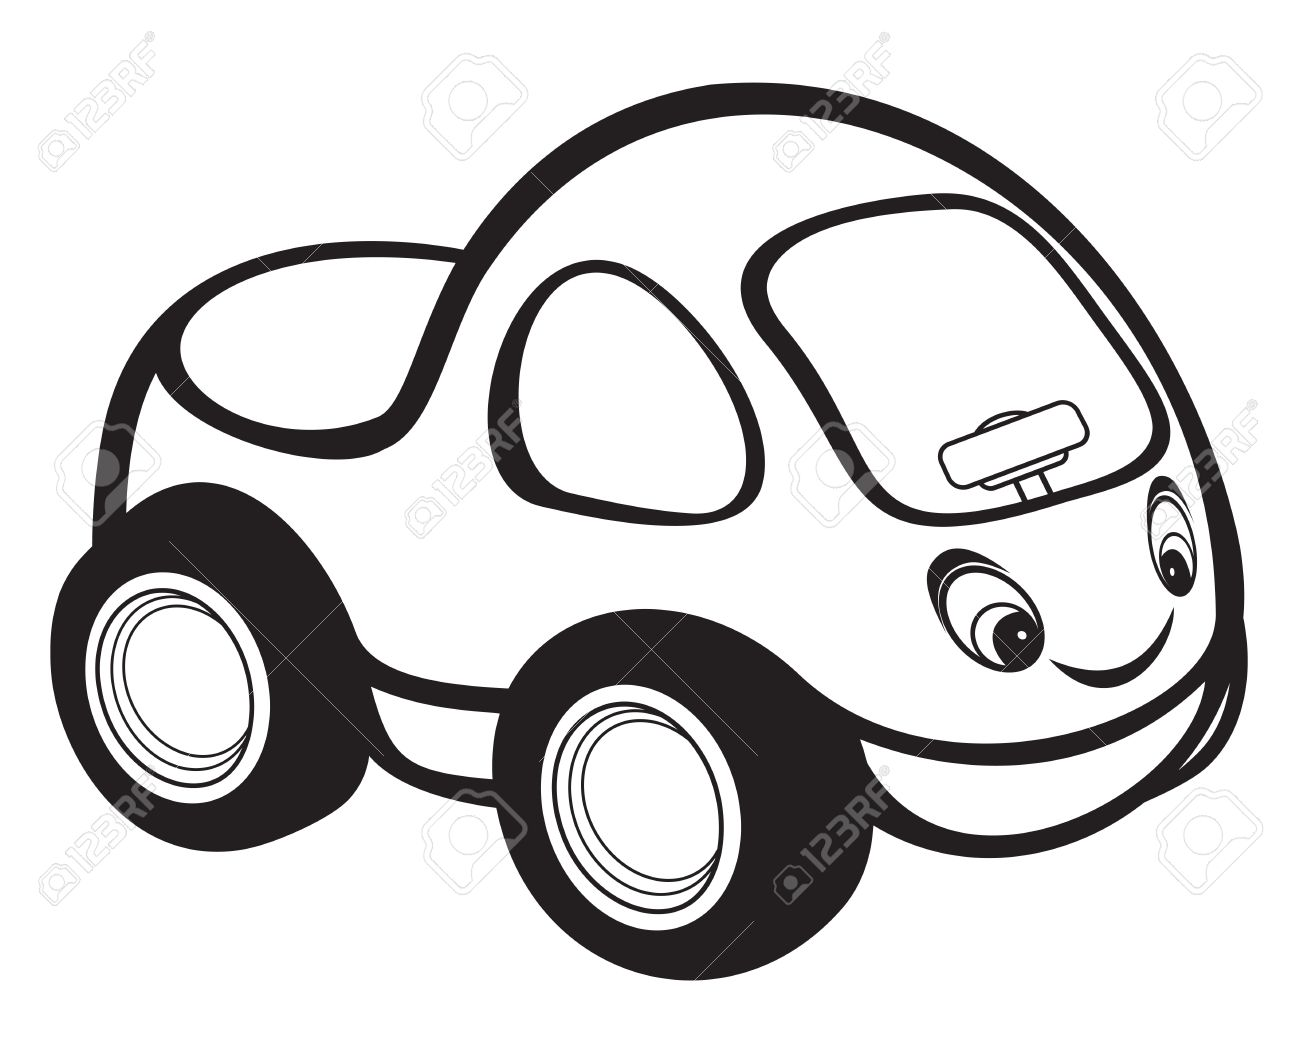 1300x1053 Image Of 39 Car Clipart Black And White Images